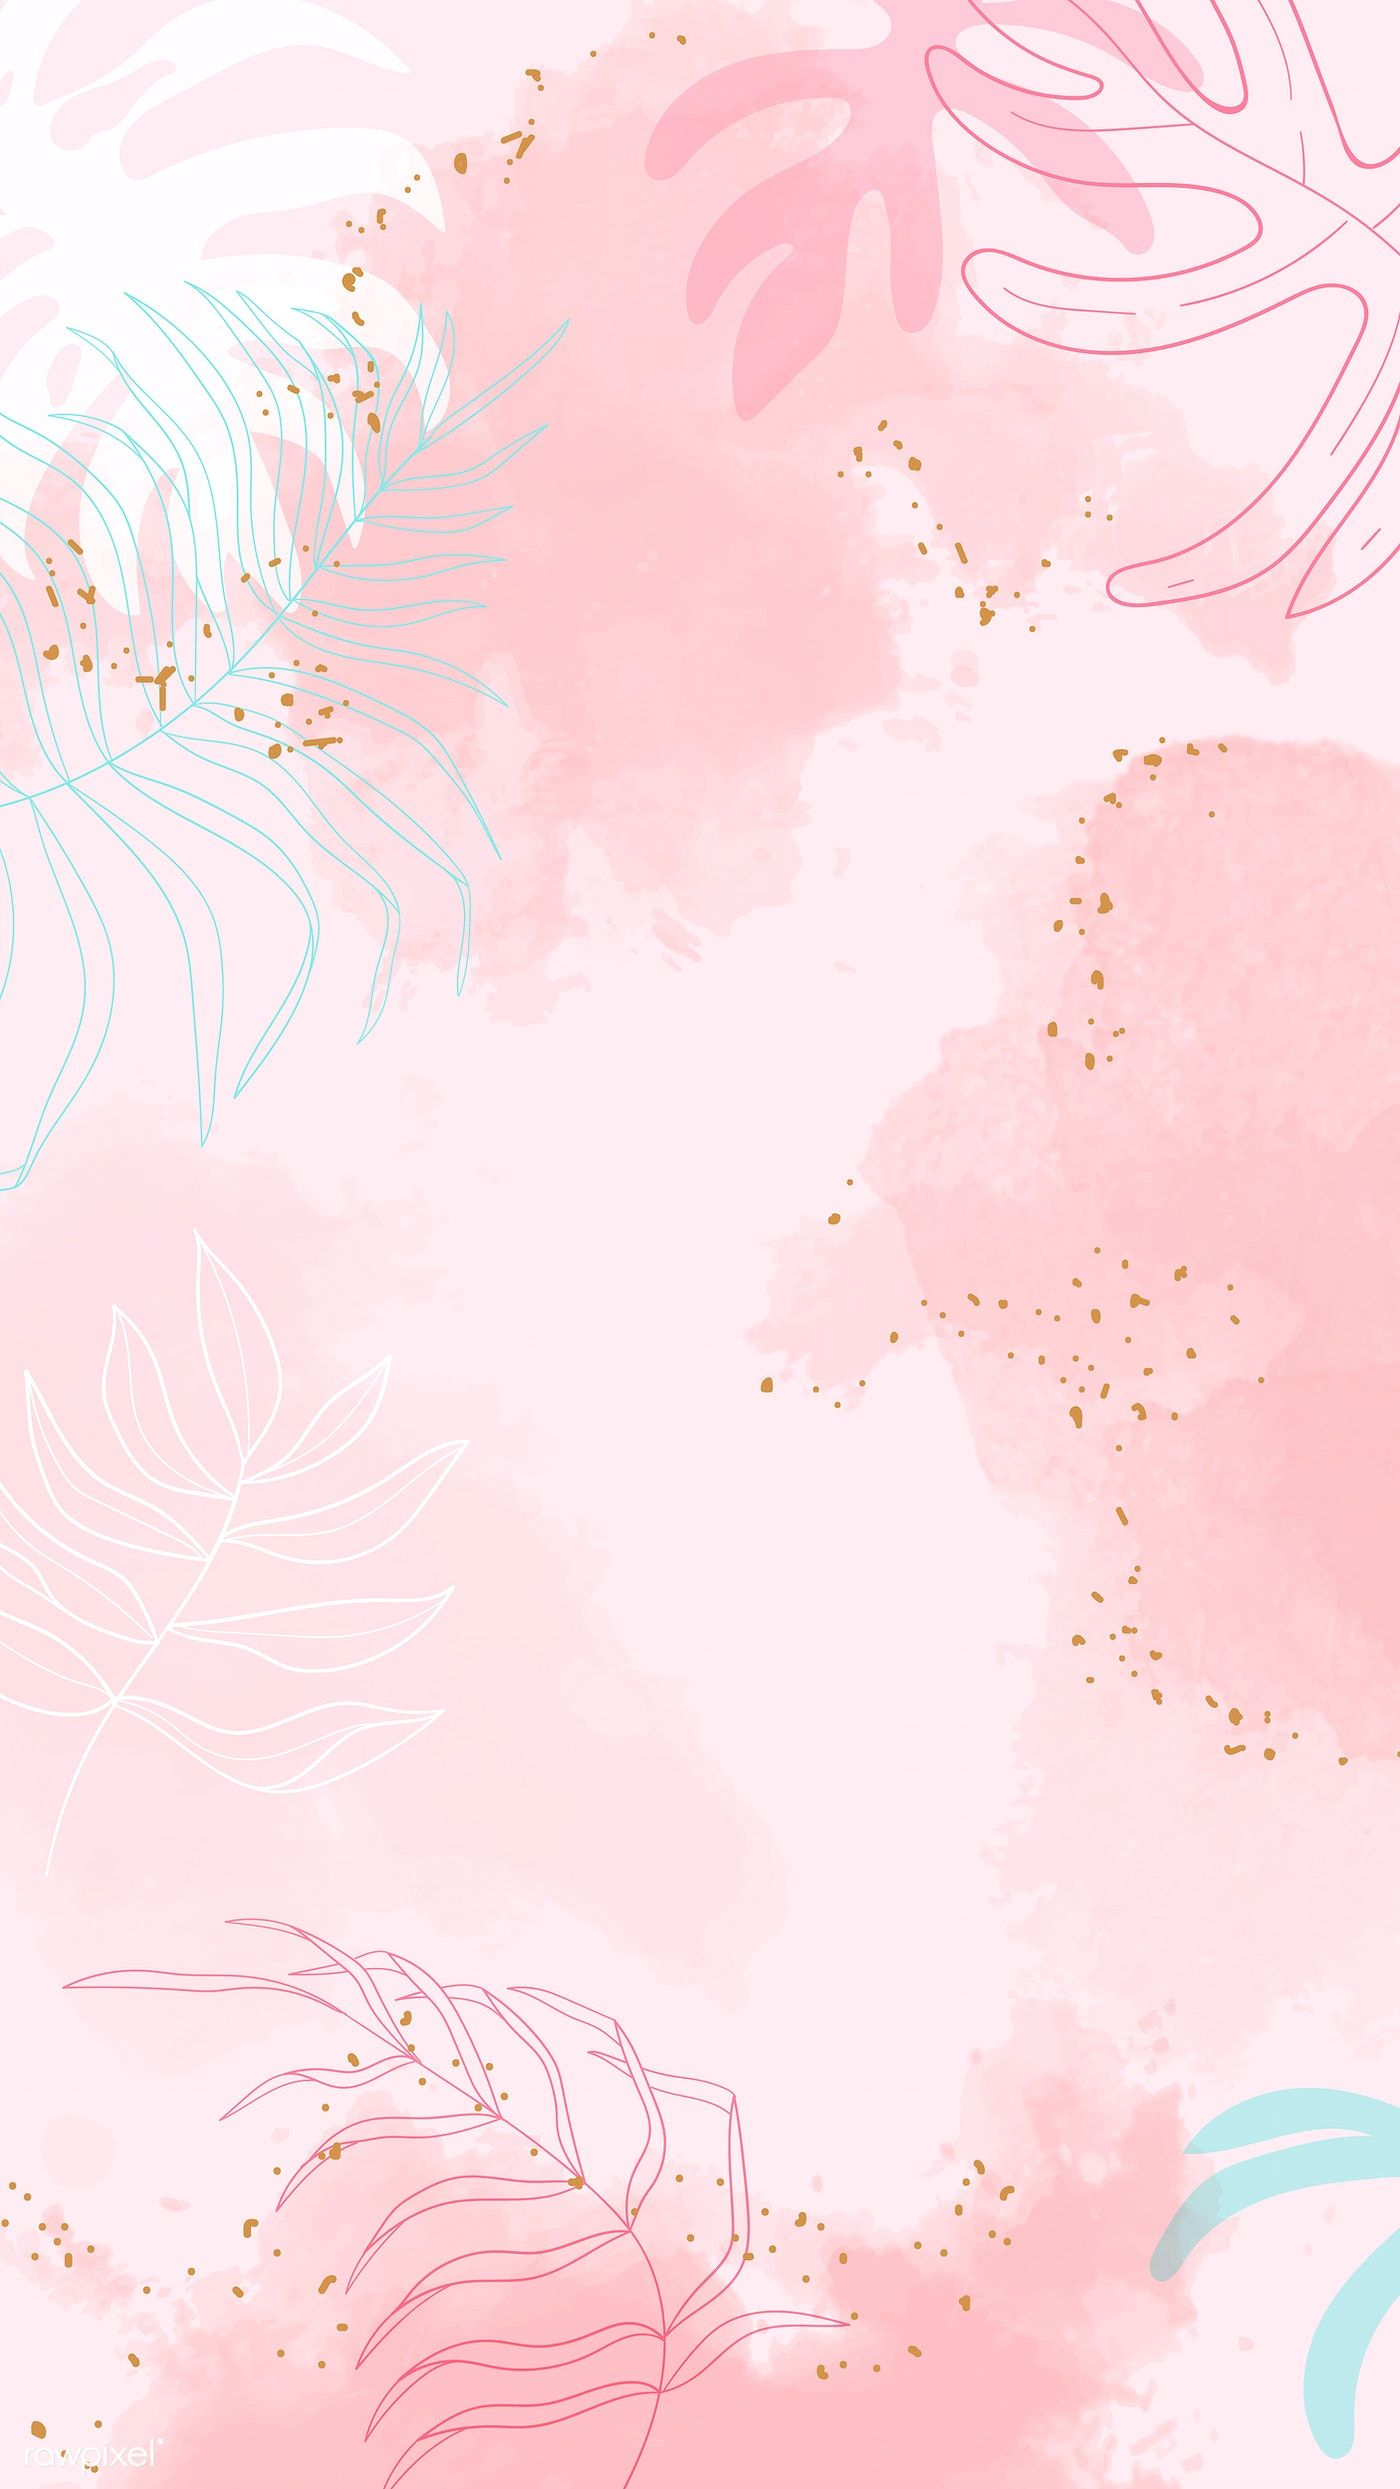 Download Premium Vector Of Beige Leafy Watercolor Mobile Phone Wallpaper Floral Watercolor Background Pink Wallpaper Backgrounds Watercolor Background